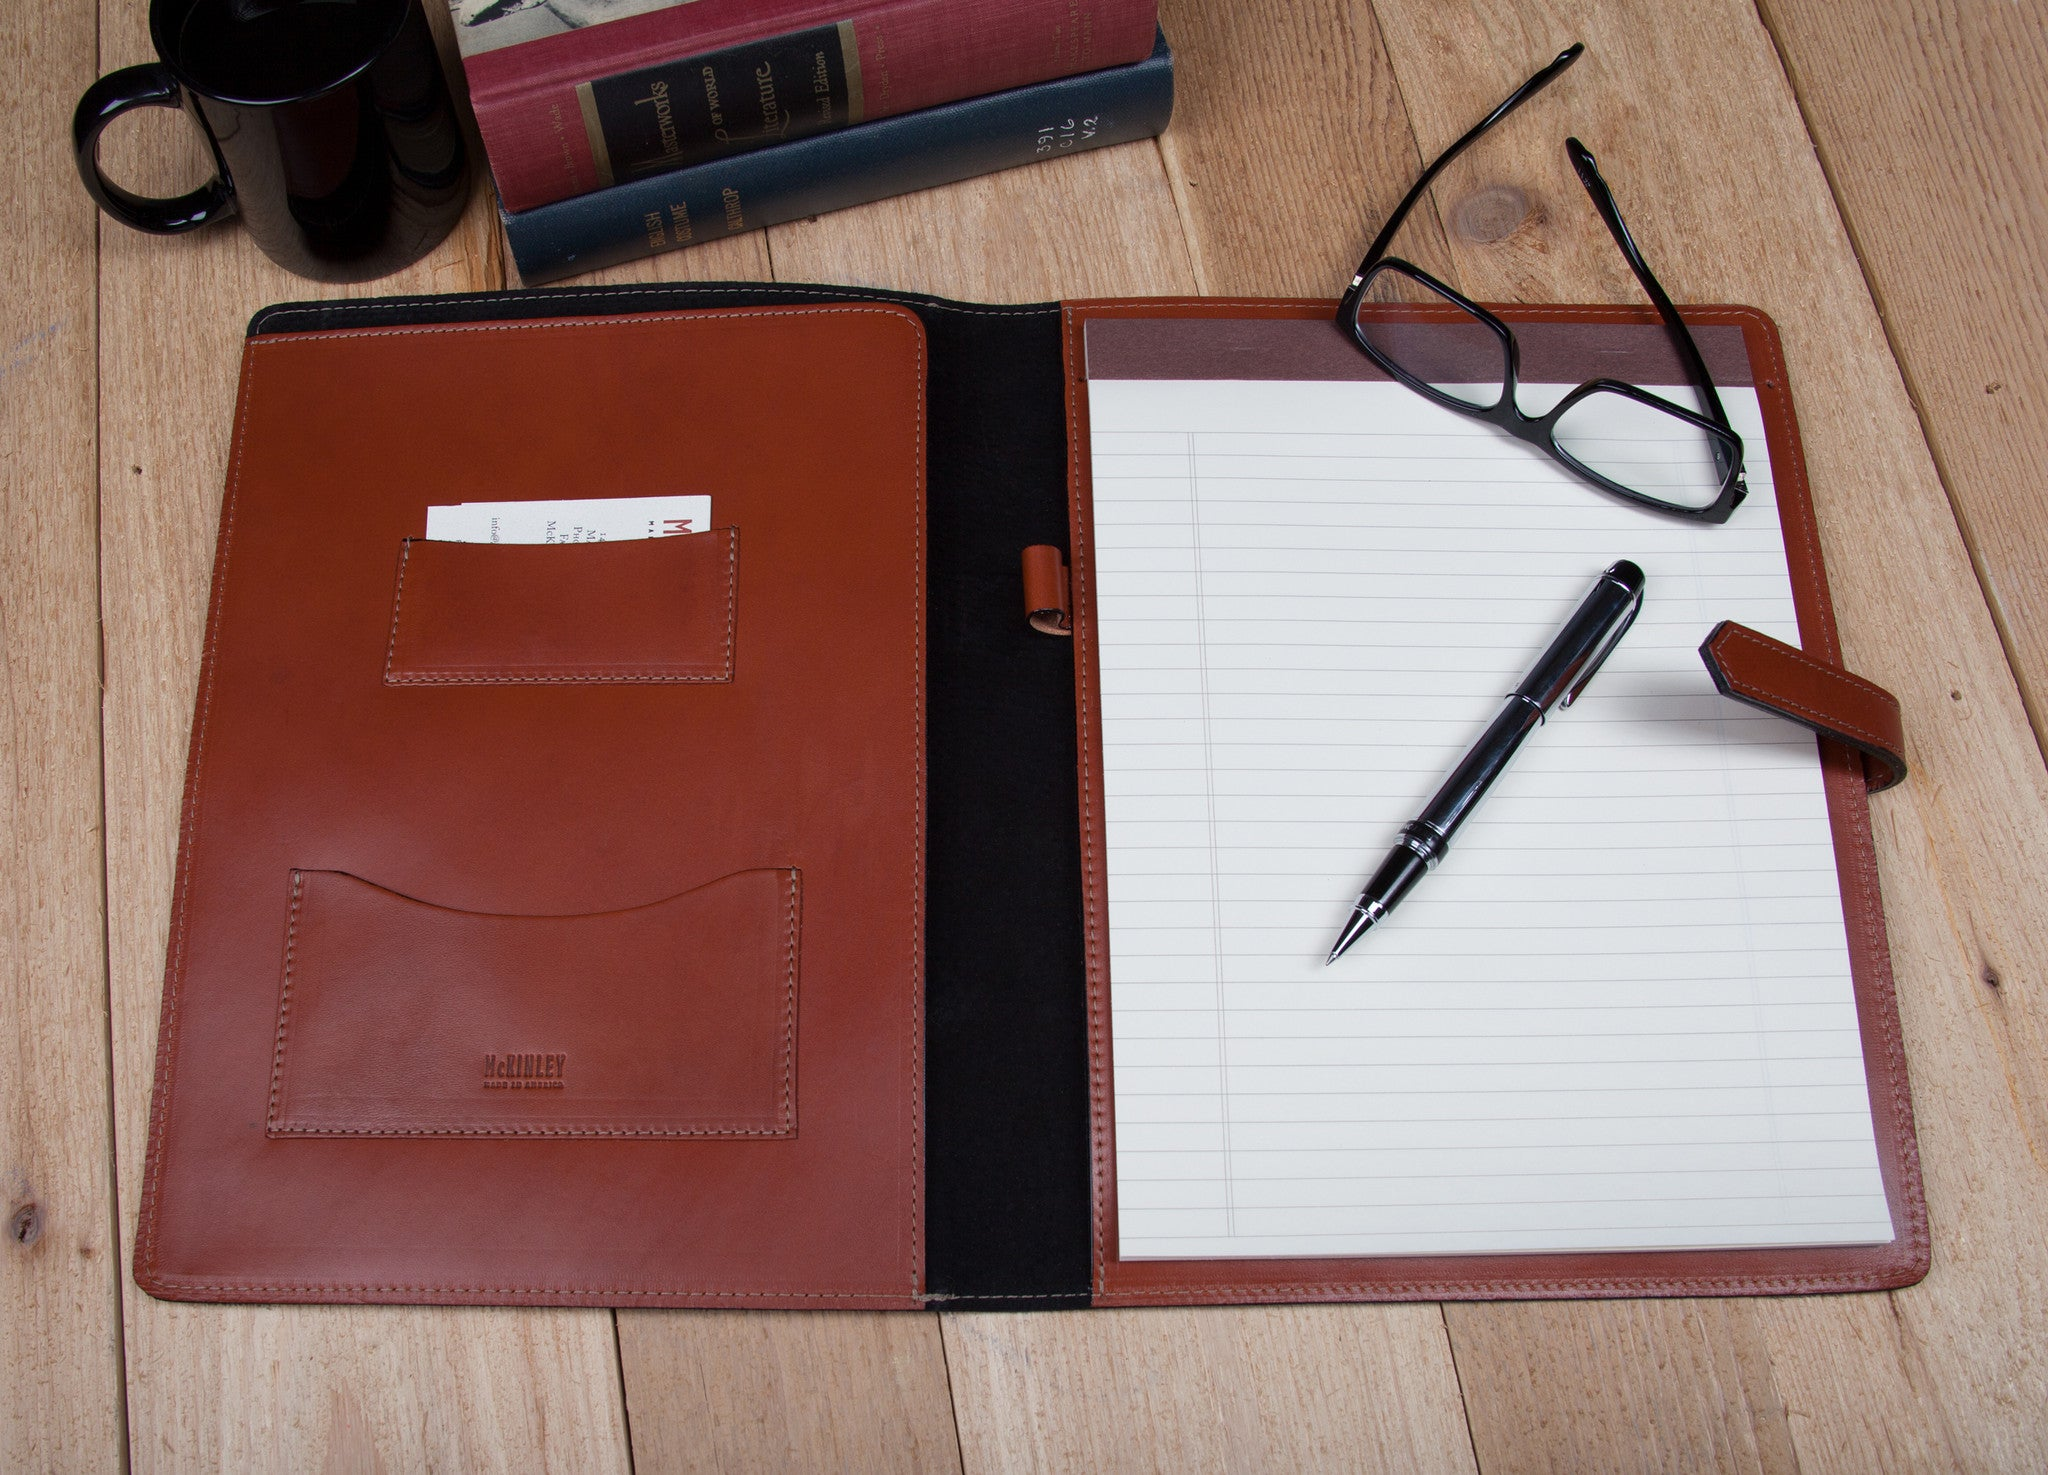 Leather Binders | Personalized Leather Padfolios & Leather